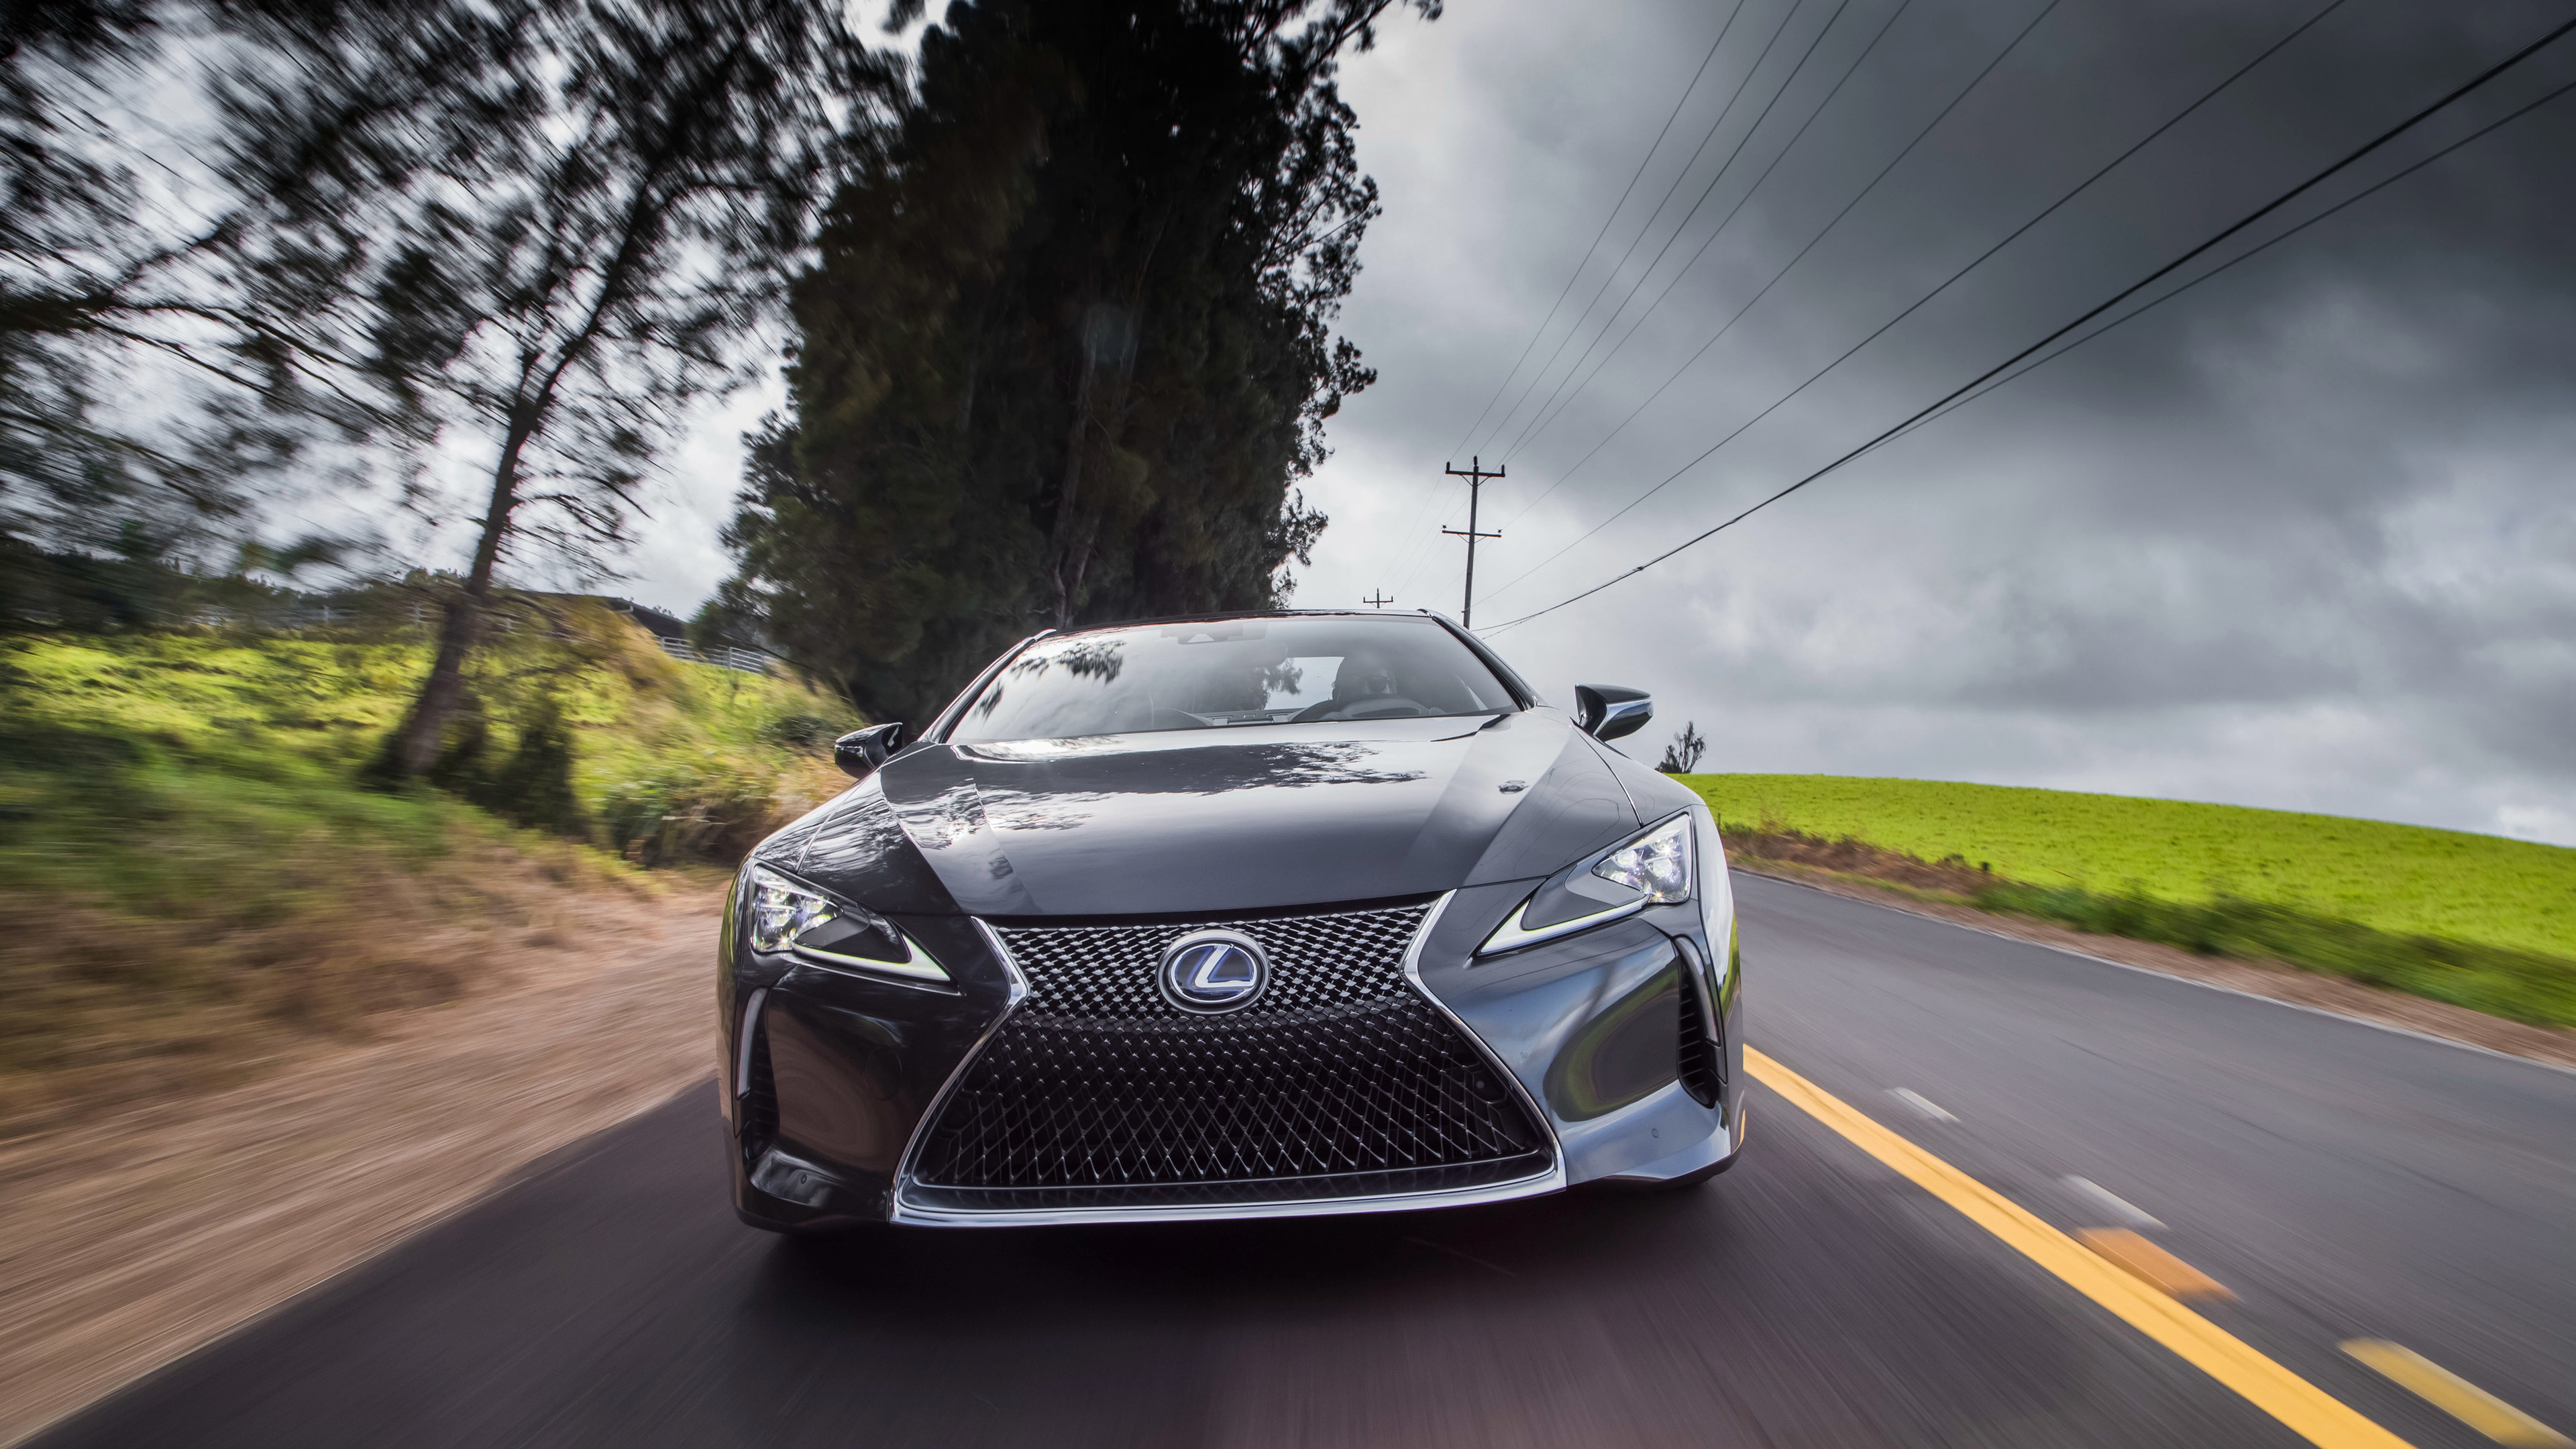 lexus lc 500h 2018 front 1539107305 - Lexus LC 500h 2018 Front - lexus wallpapers, lexus lc 500 wallpapers, hd-wallpapers, 4k-wallpapers, 2017 cars wallpapers